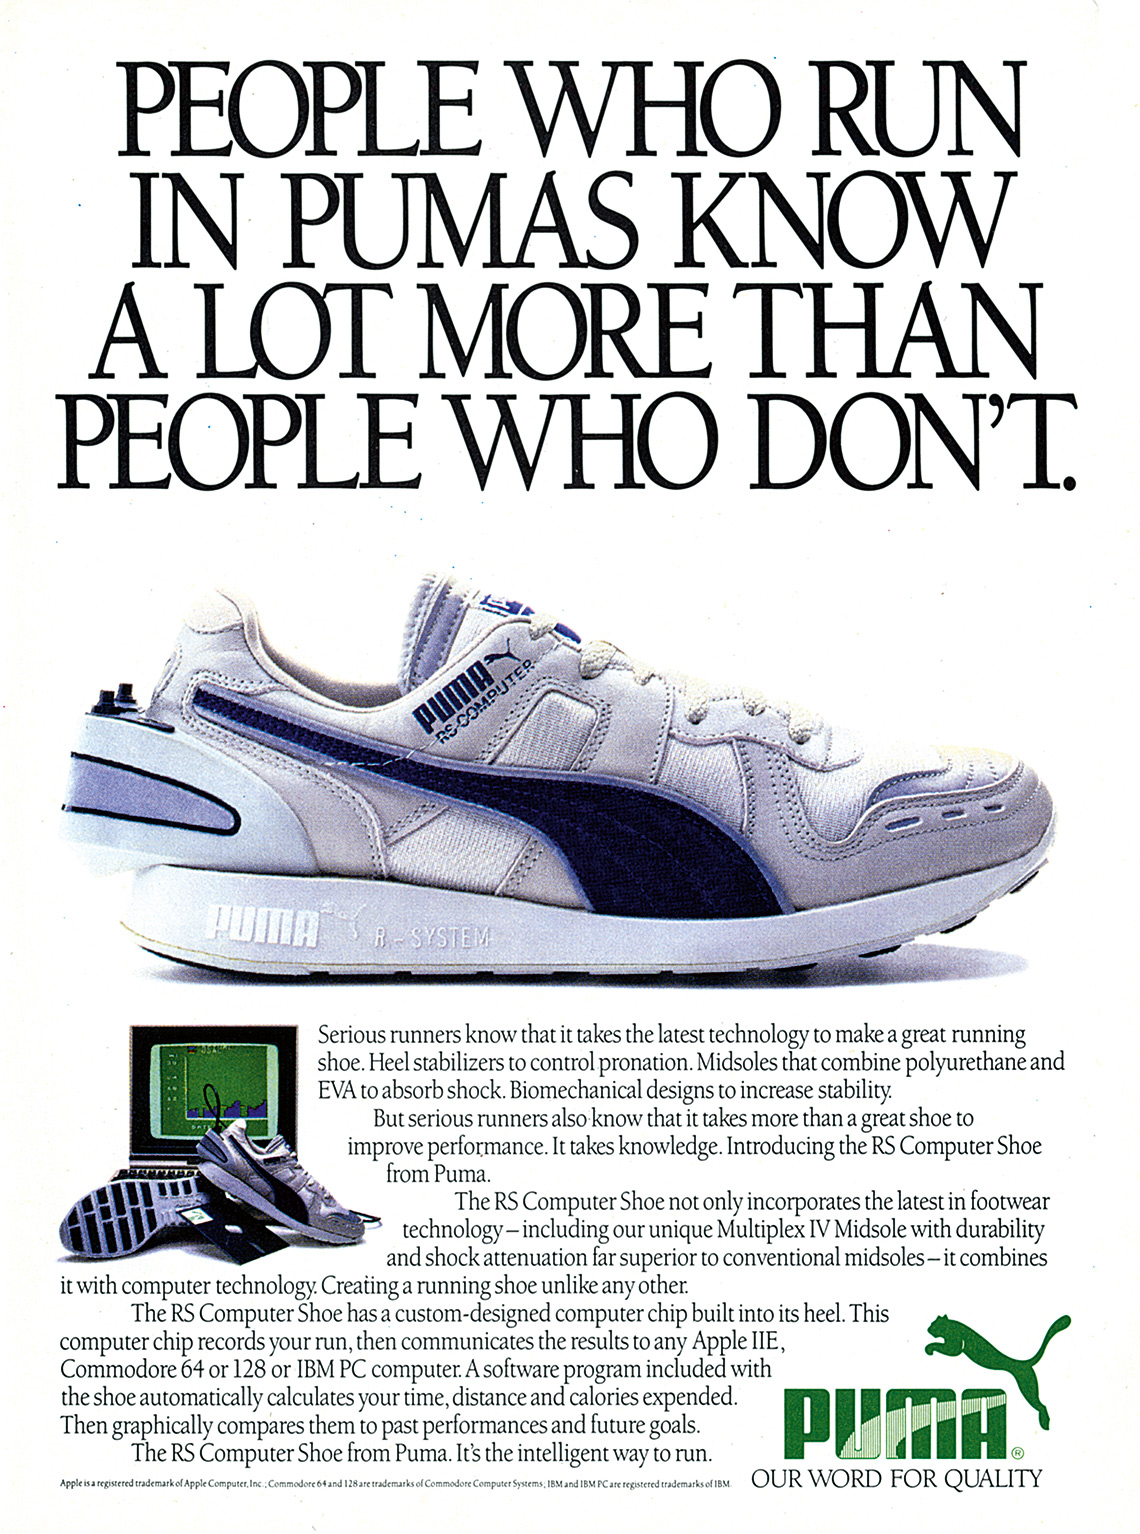 9a3c64dddc7 Puma is rereleasing its classic 1986 RS-Computer running shoe - The ...